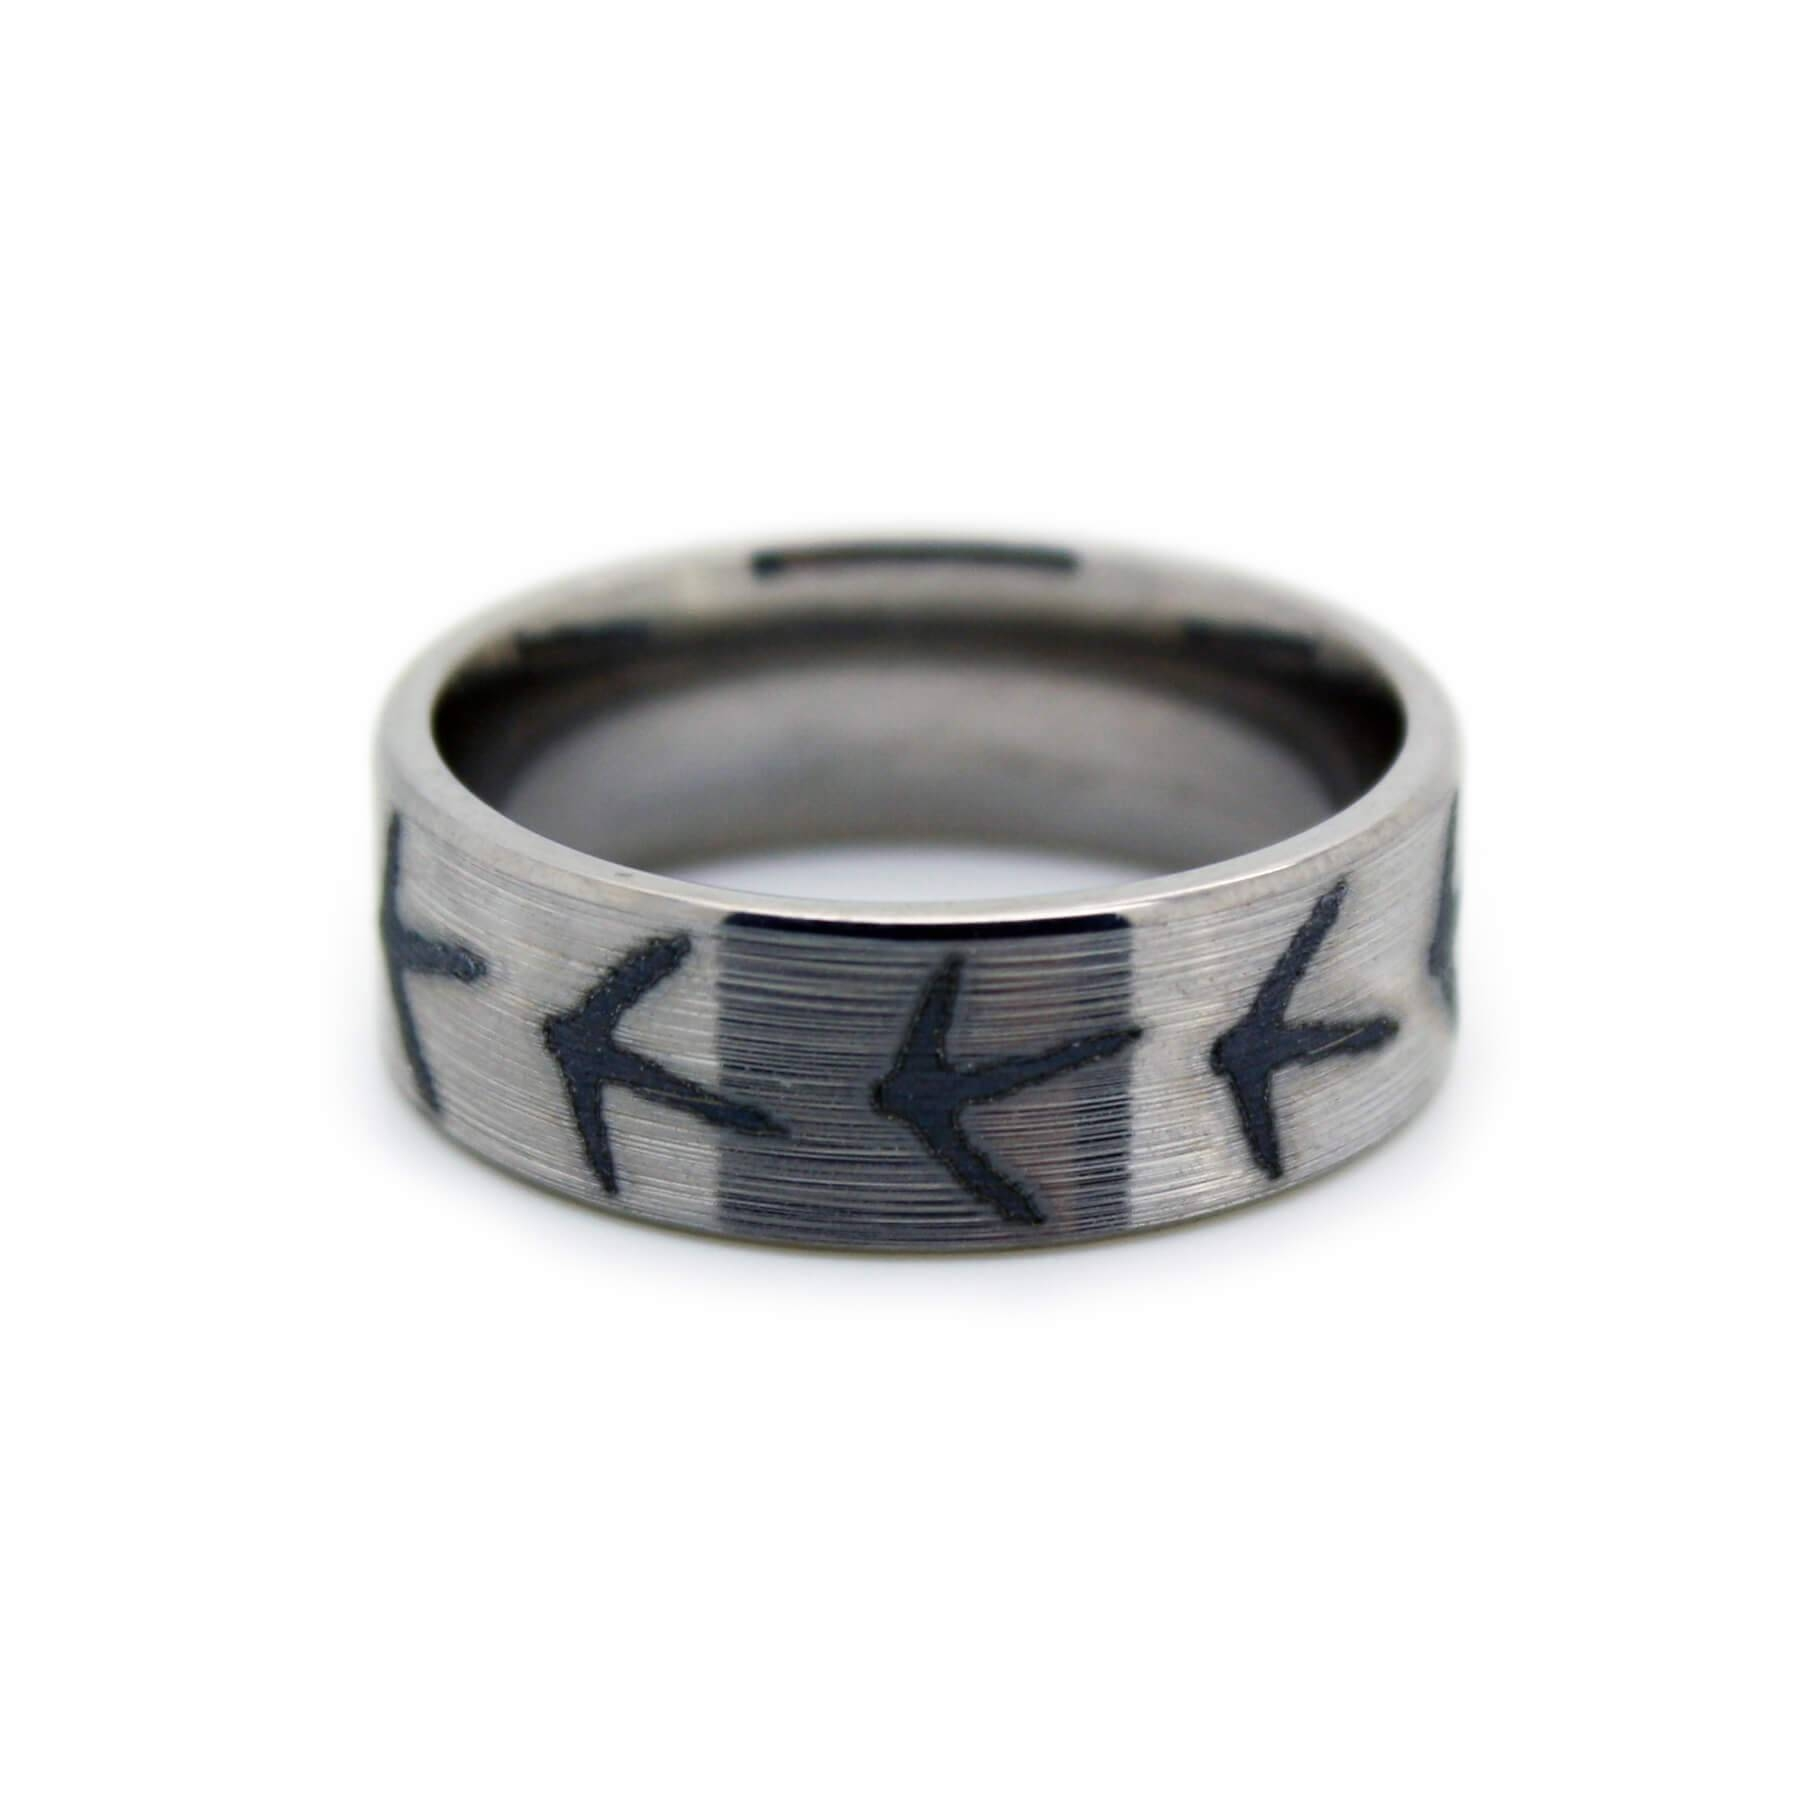 Turkey Hunting Wedding Band – Titanium Laser Engraved Foot Ring Regarding Titanium Mens Wedding Rings (View 12 of 15)